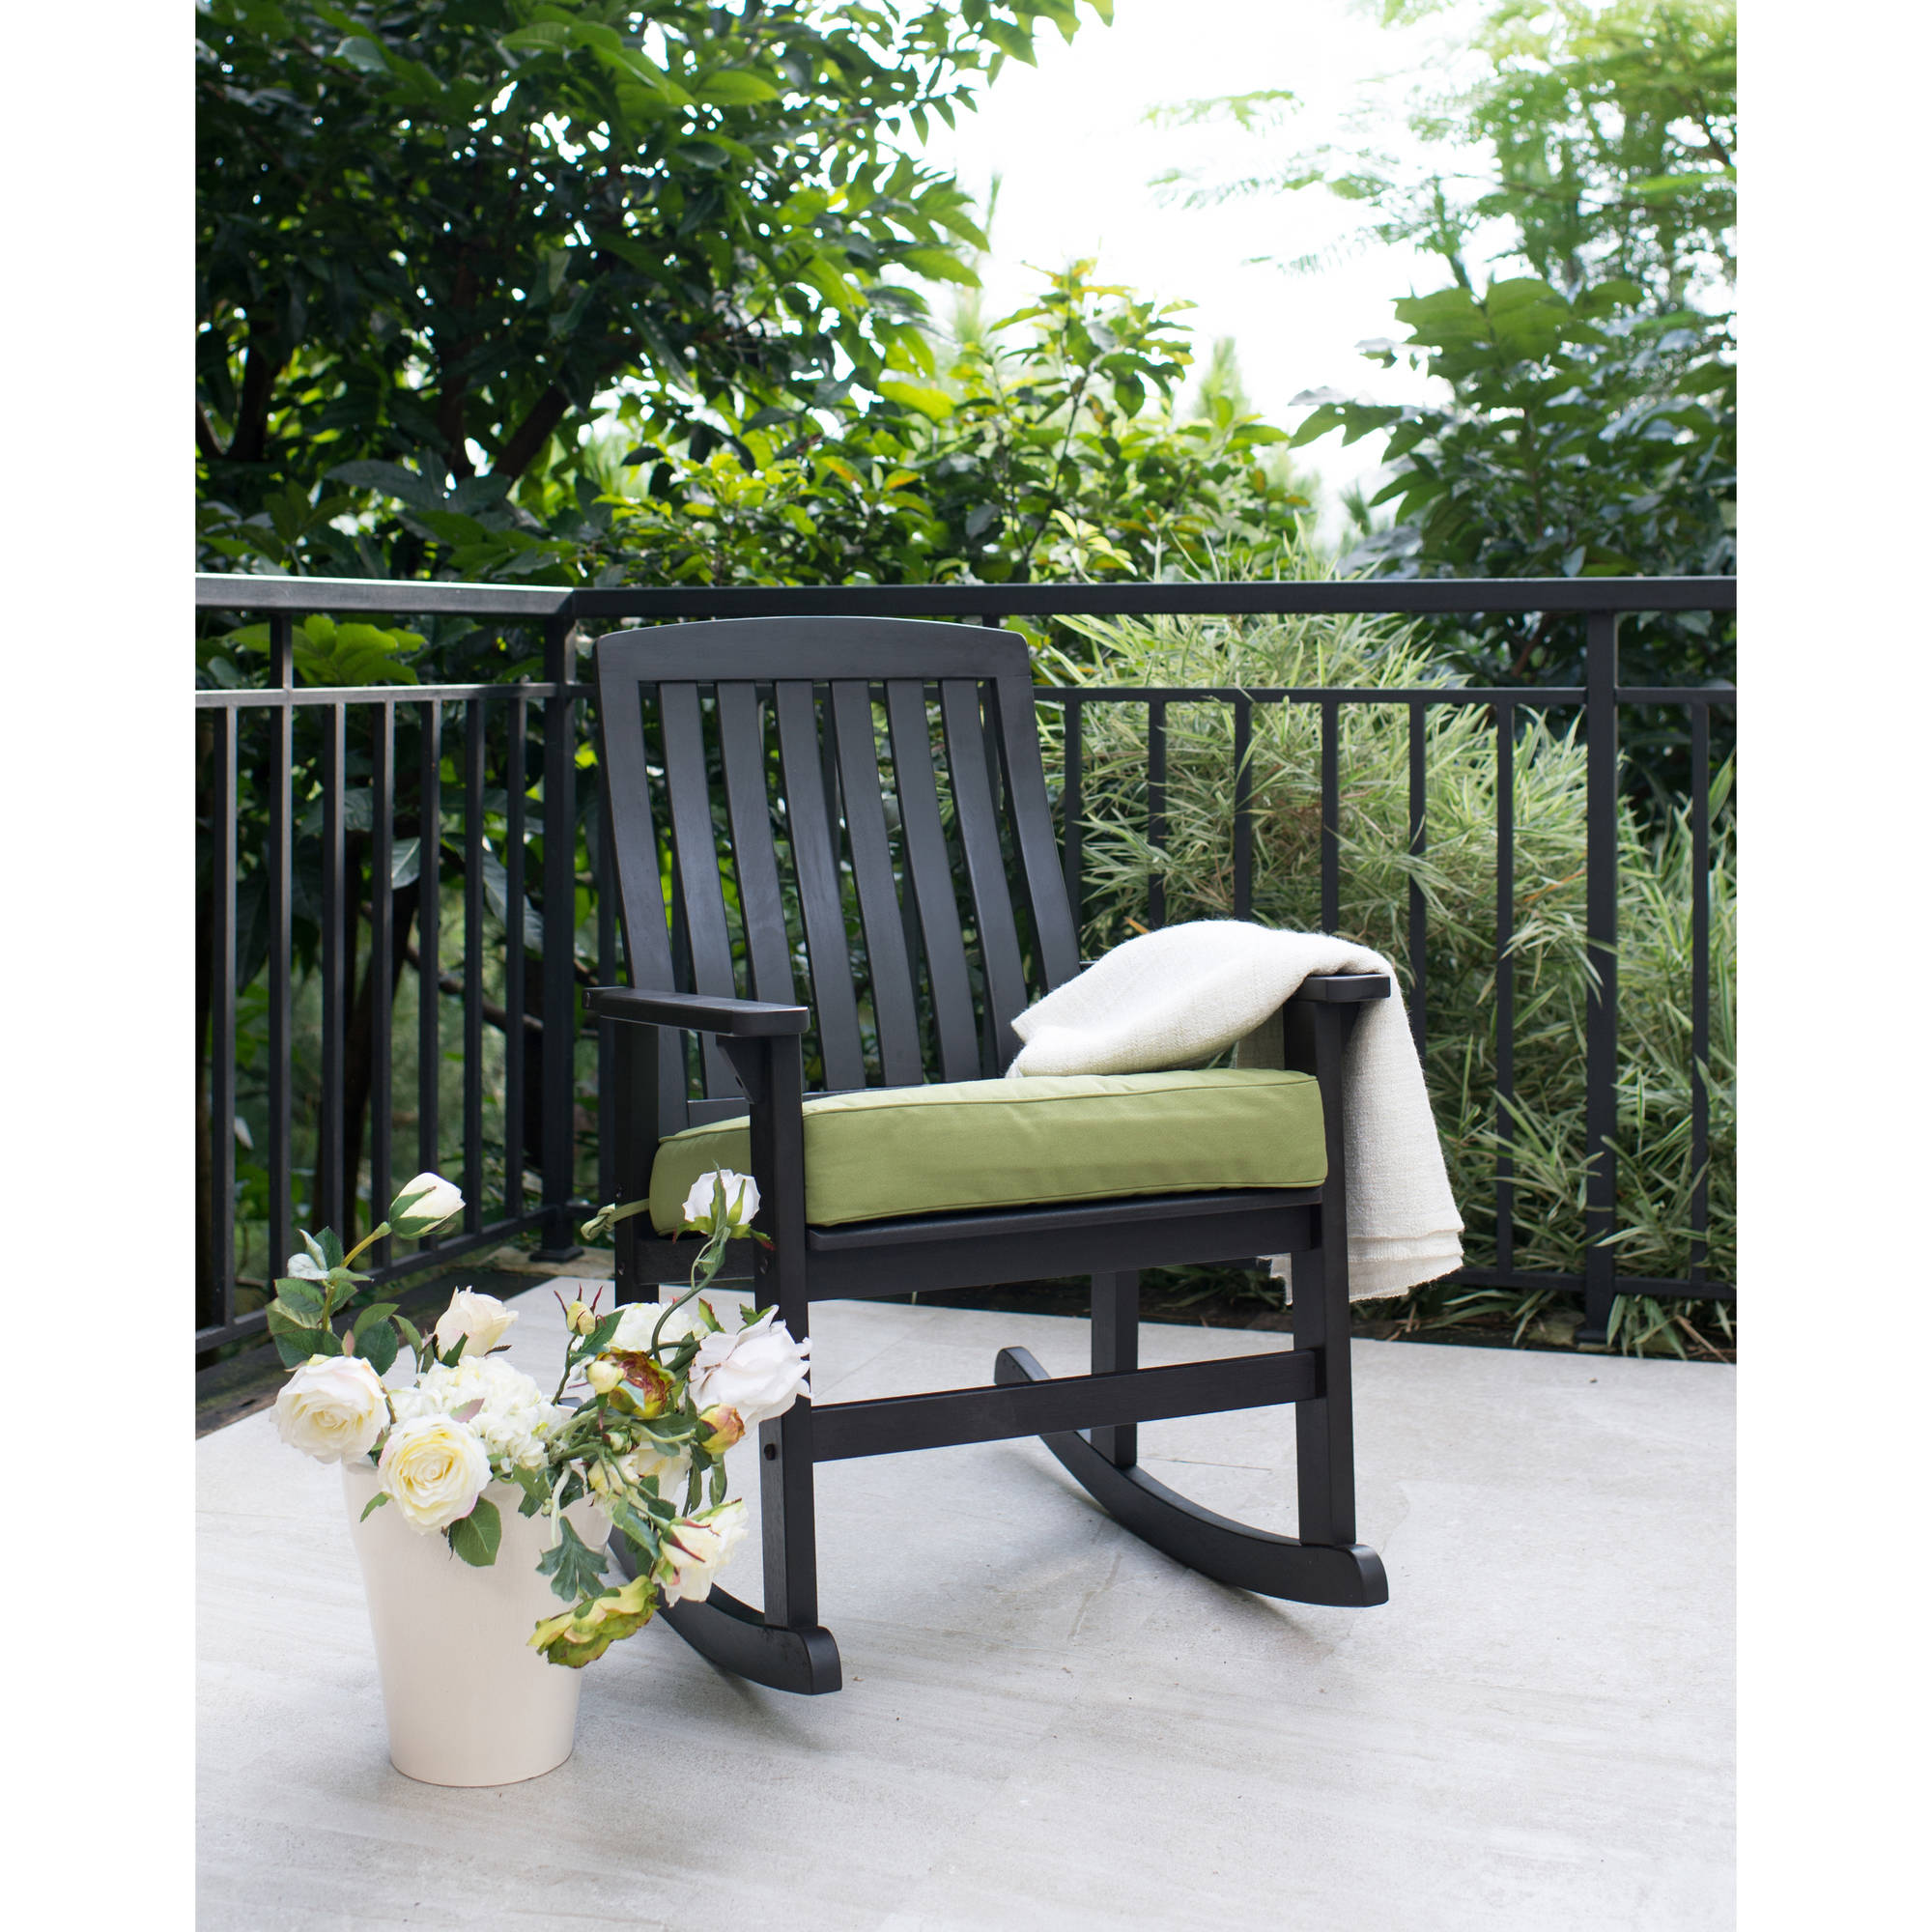 Delightful Better Homes U0026 Gardens Delahey Wood Porch Rocking Chair, Black   Walmart.com